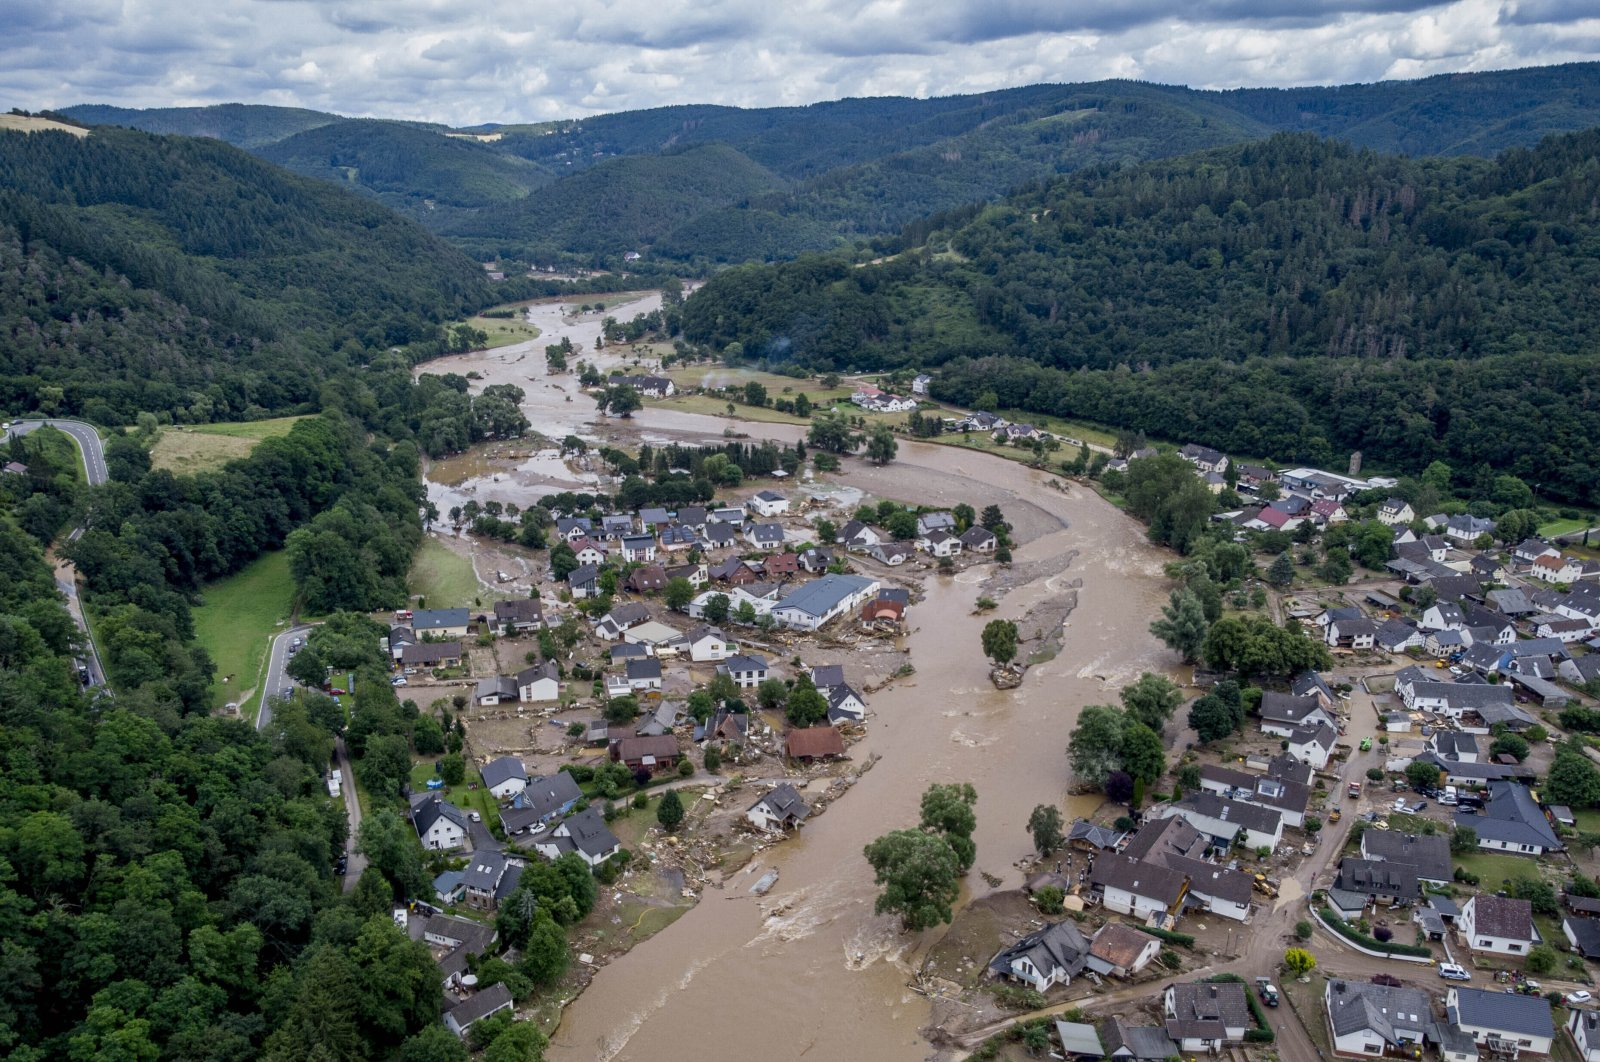 The Ahr river flows past houses destroyed by floods in Insul, Germany, July 15, 2021. (AP Photo)